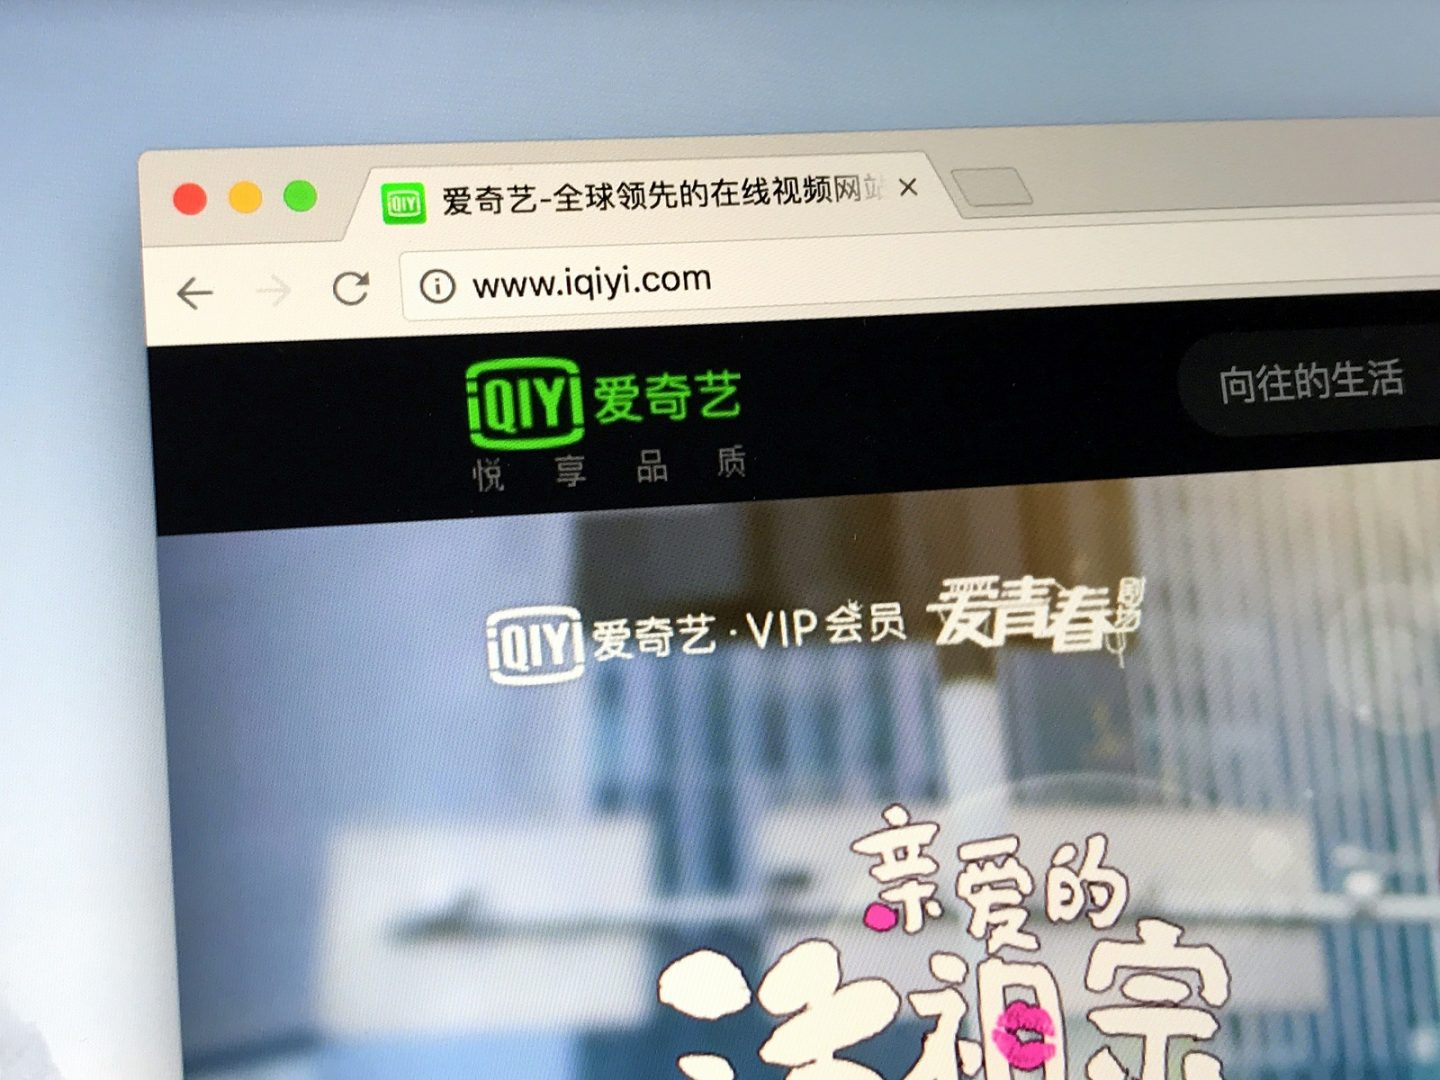 INSIGHTS | Short seller huffs and puffs, but it doesn't blow Iqiyi down